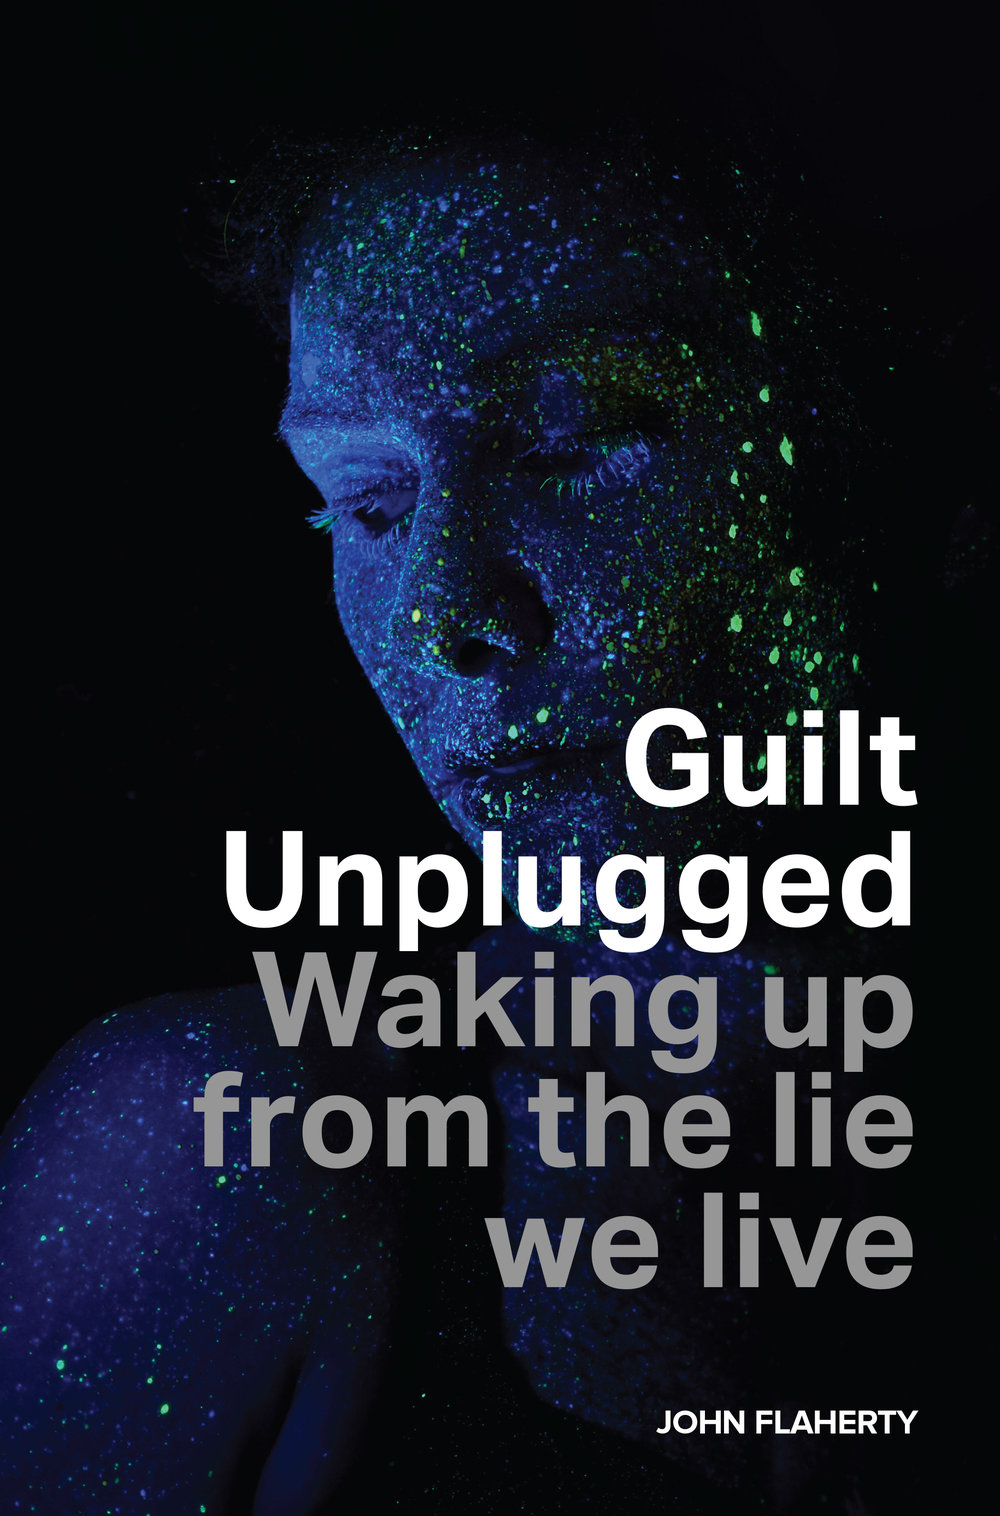 Guilt Unplugged : Waking up from the lie we live, English, 2017